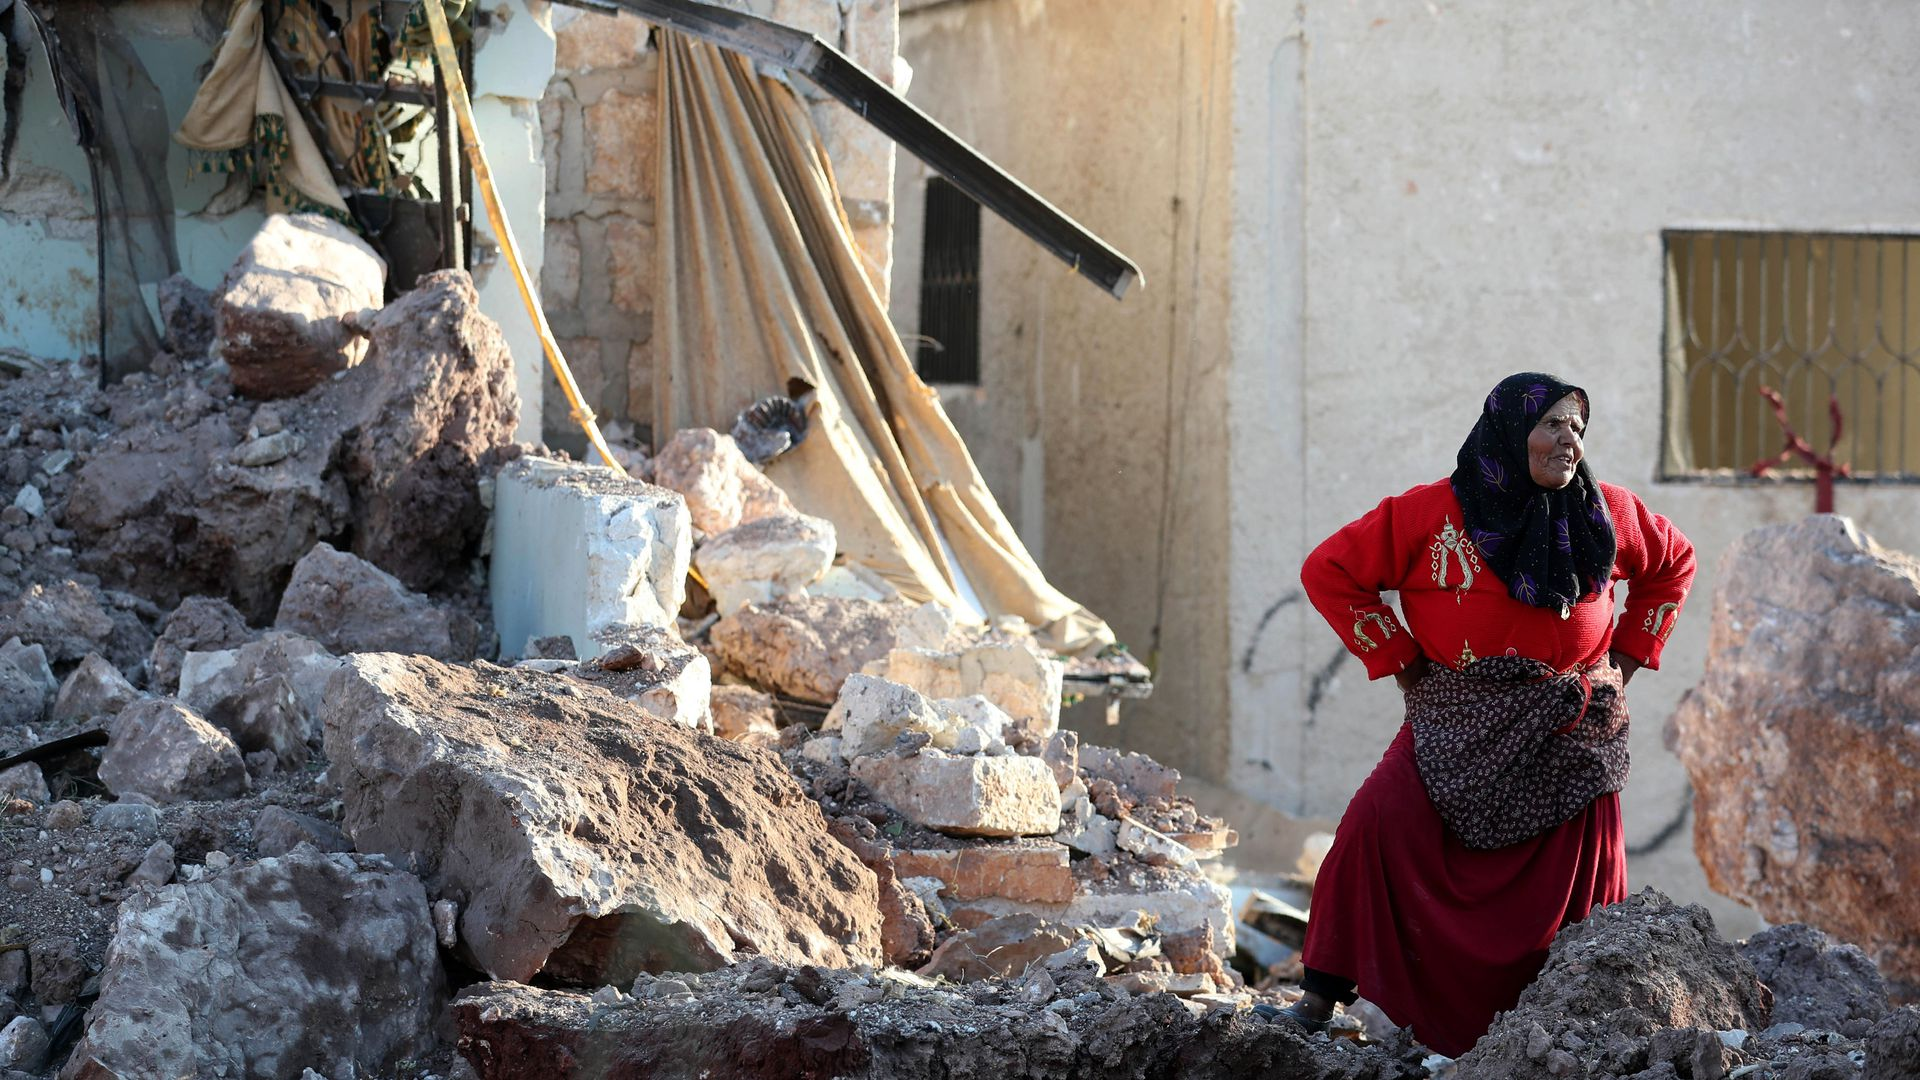 A woman standing in the rubbles following an attack in Idlib, Syria